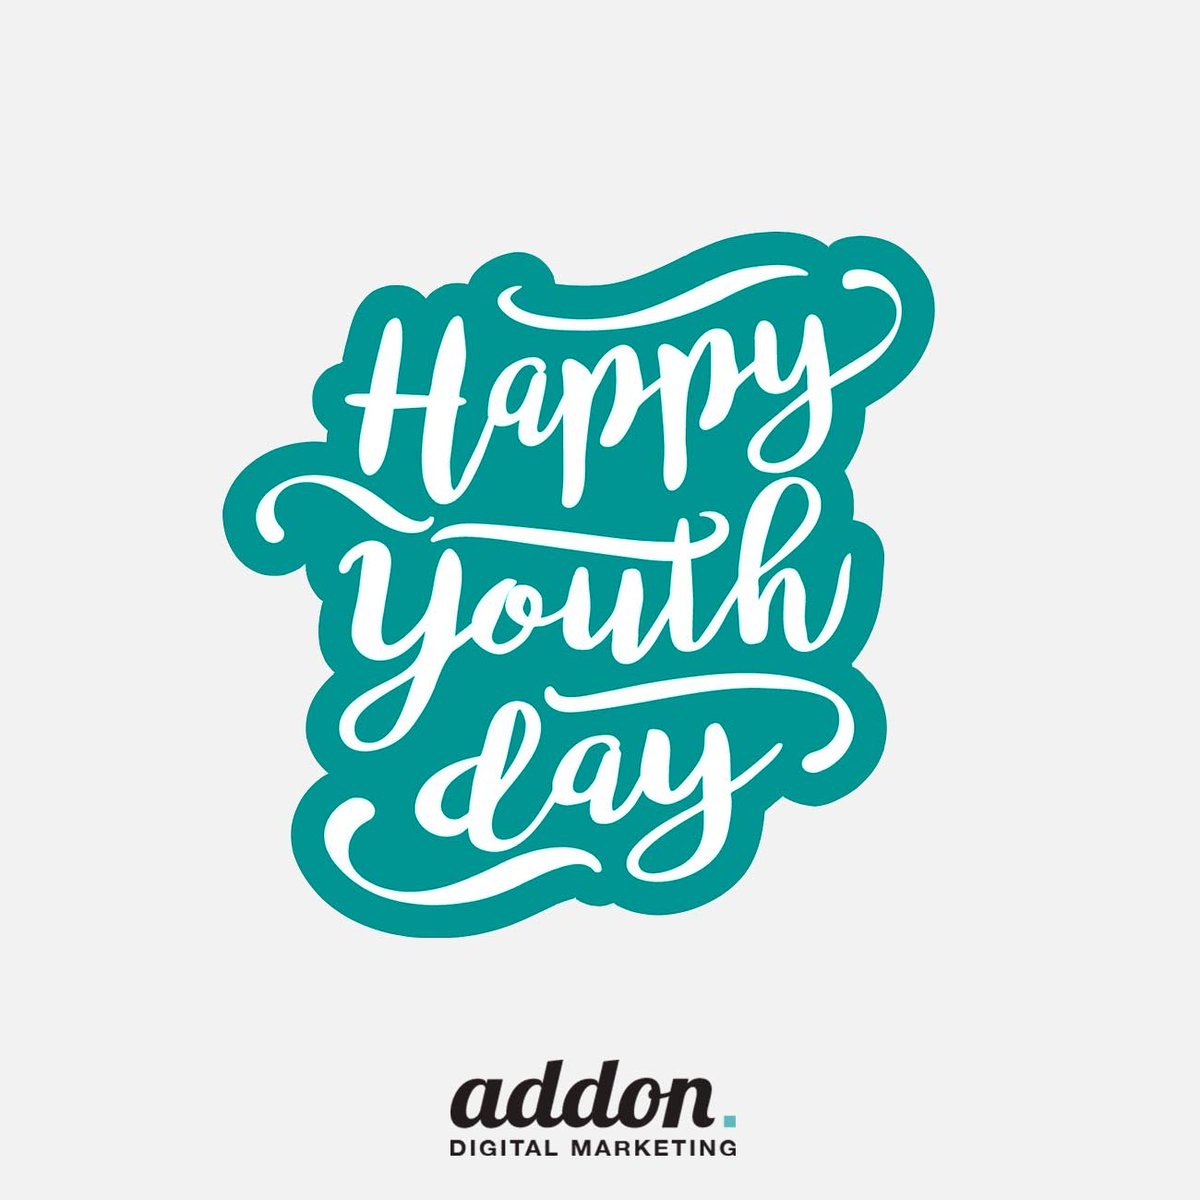 Wishing you an invigorating Youth Day, South Africa!  #addon #addondigital #digitalmarketing #socialmediamarketing #socialmediaagency #digitalagency #marketingagency #digitalcapetown #socialmediacapetown #digitalmarketingcapetown #socialmediamarketingcapetown https://t.co/dujXl7Y2fr